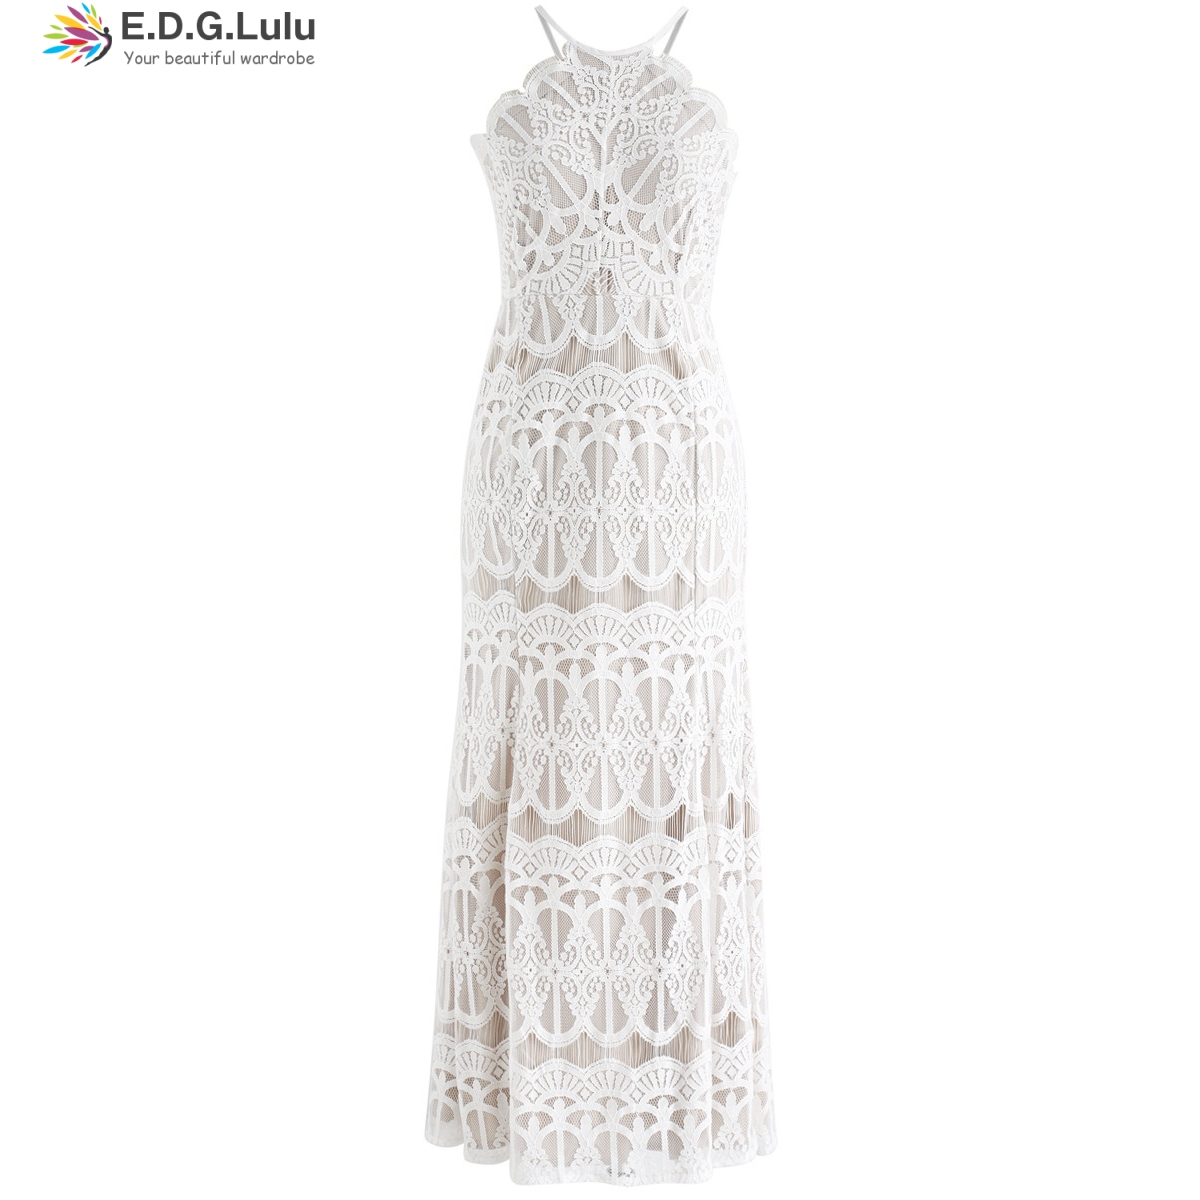 EDGLulu white lace <font><b>dress</b></font> backless sexy party summer <font><b>dress</b></font> 2019 fashion long <font><b>dress</b></font> new arrival runway beach <font><b>dress</b></font> image